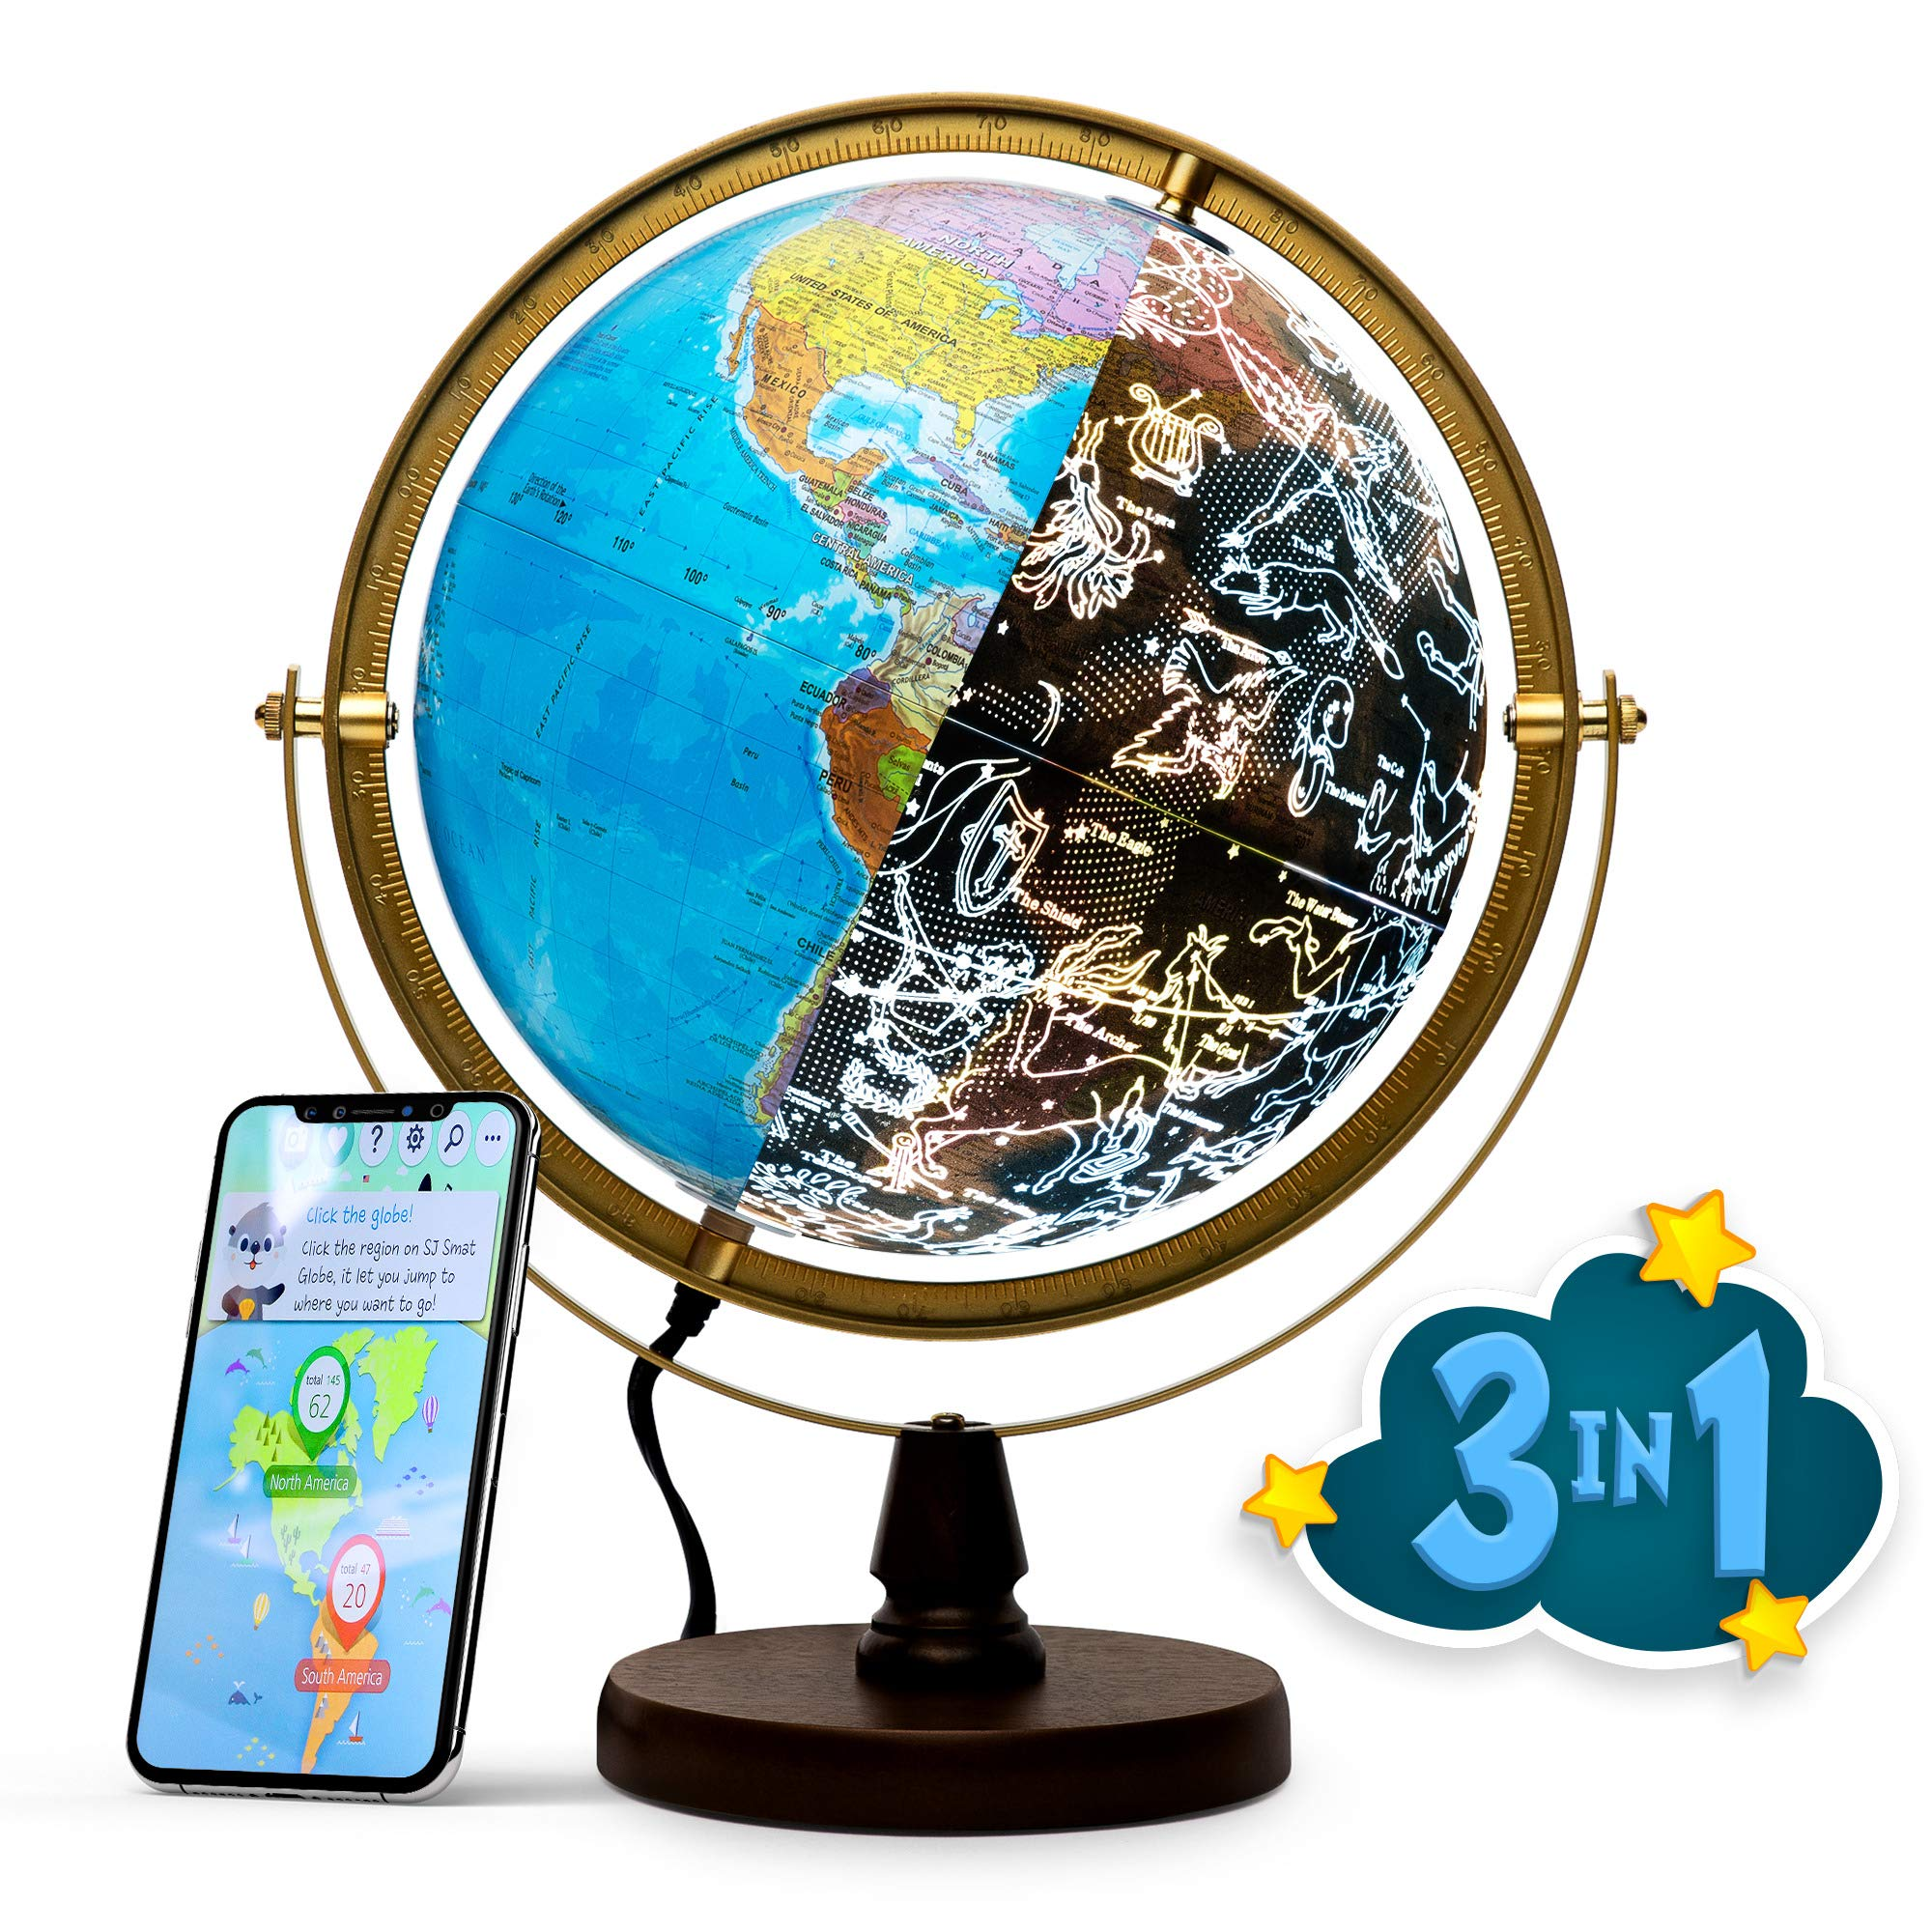 SJSMARTGLOBE with Interactive APP & LED Illuminated Constellations at Night, Educational Content for Kids, US-Certified LED & US-Patented STEM Toy, 10'' World Globe with Detailed map by SJSMARTGLOBE